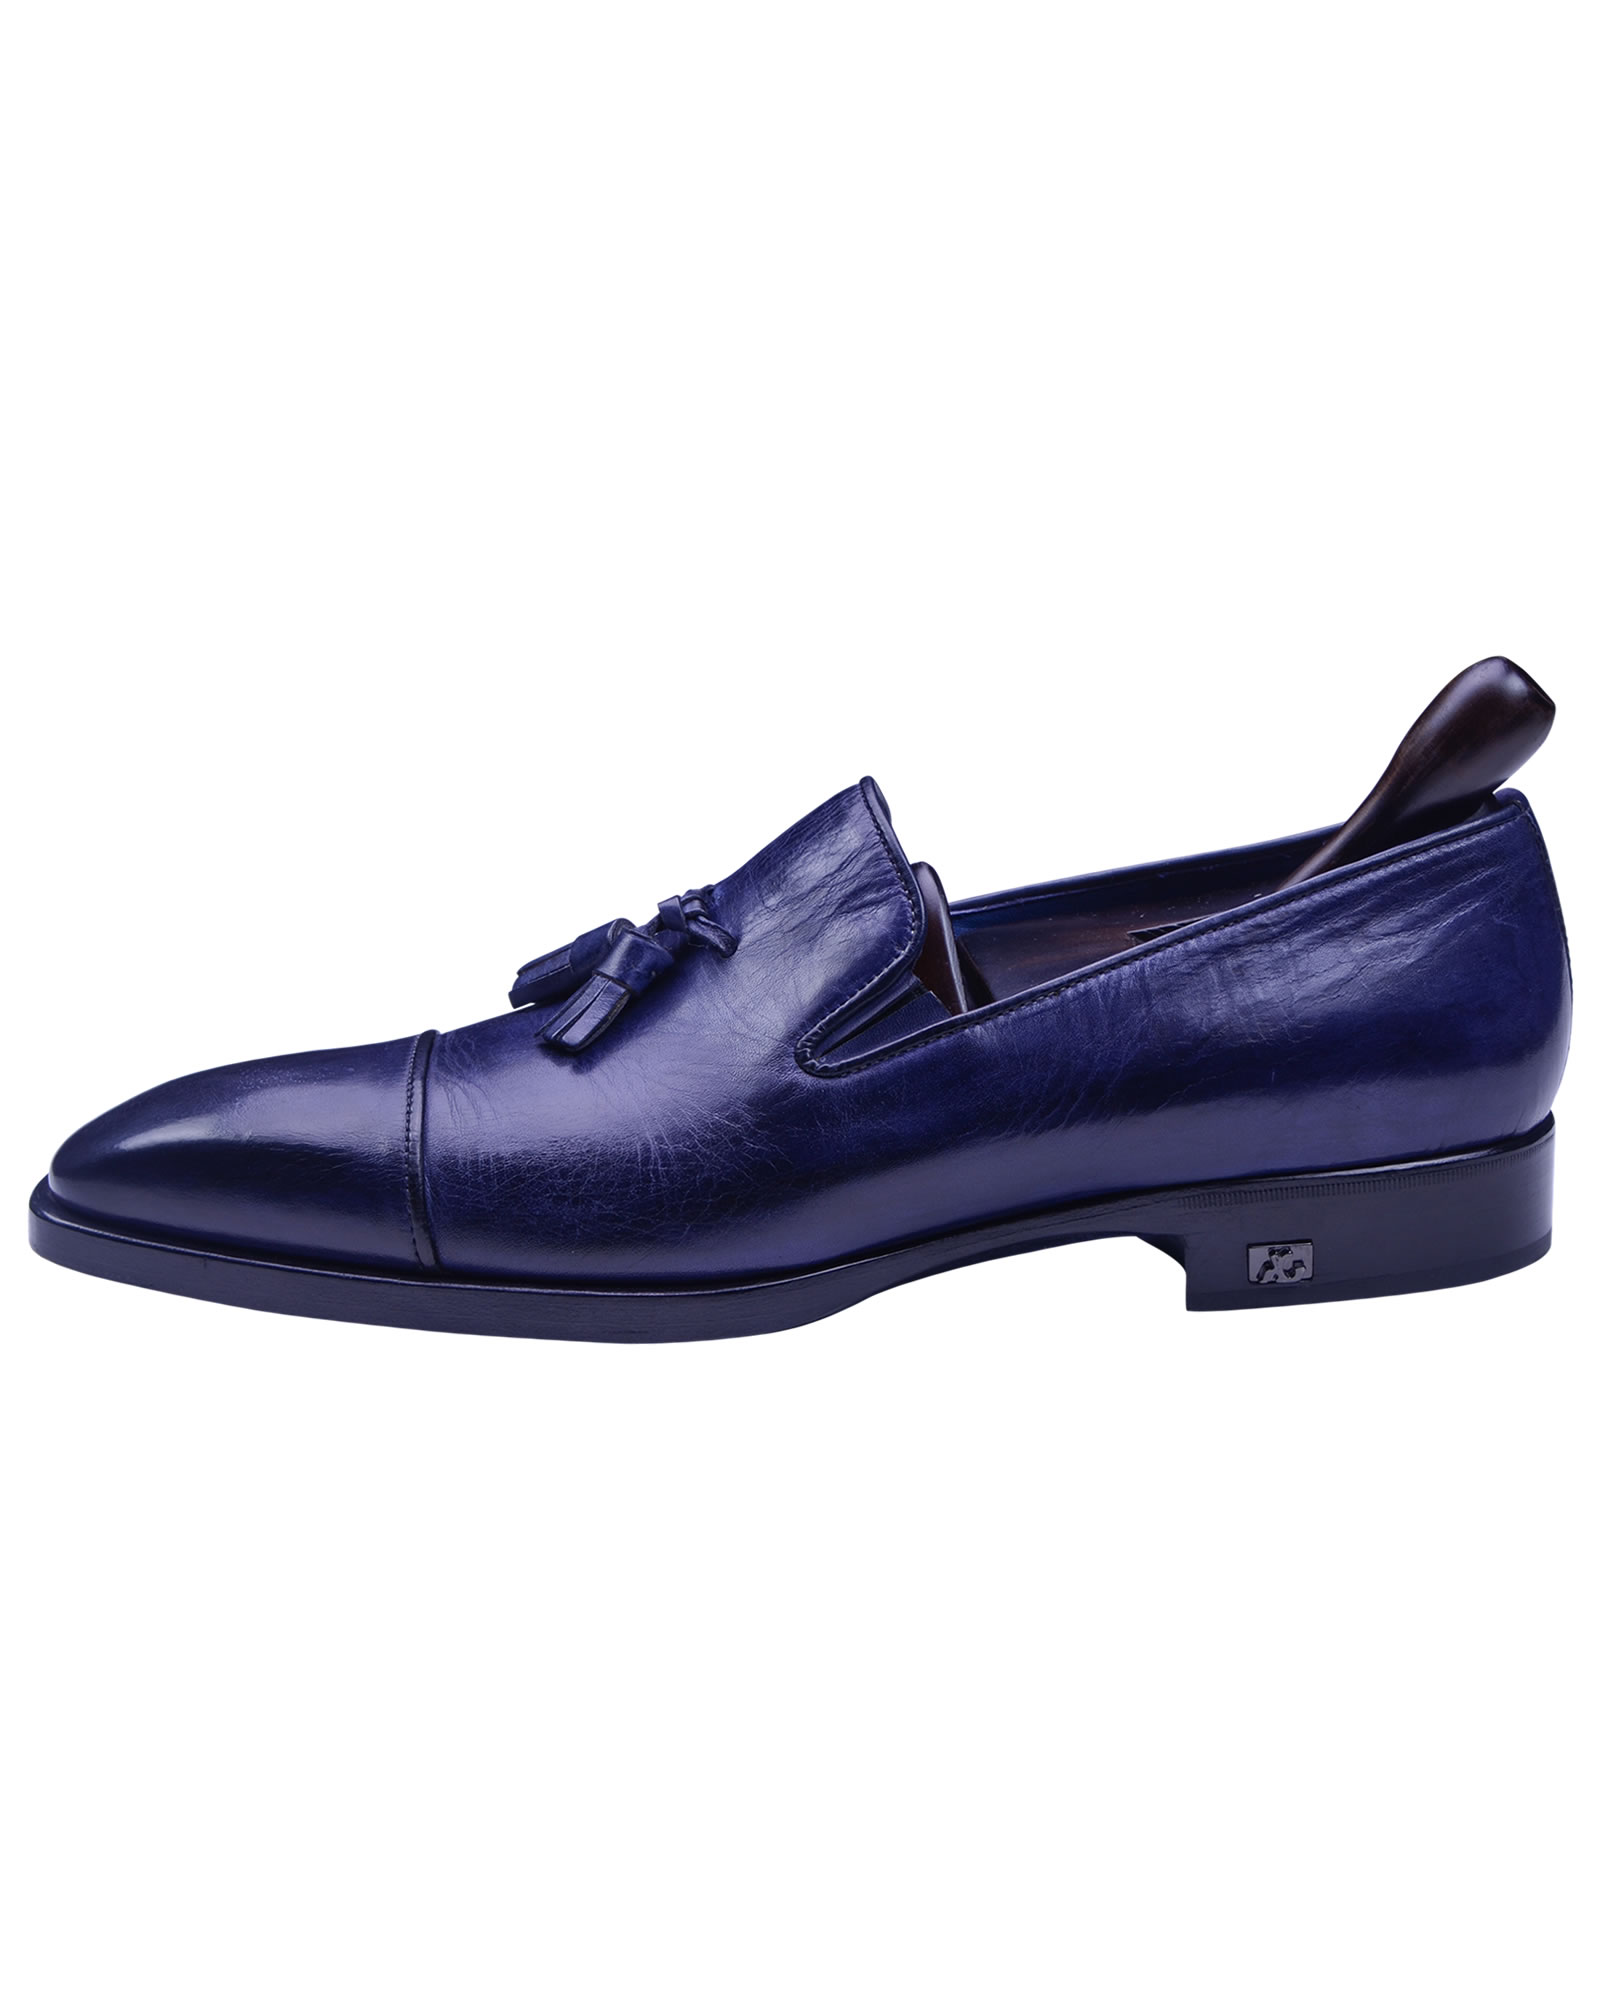 Angelo Galasso Signature Royal Blue Loafer shoes-1